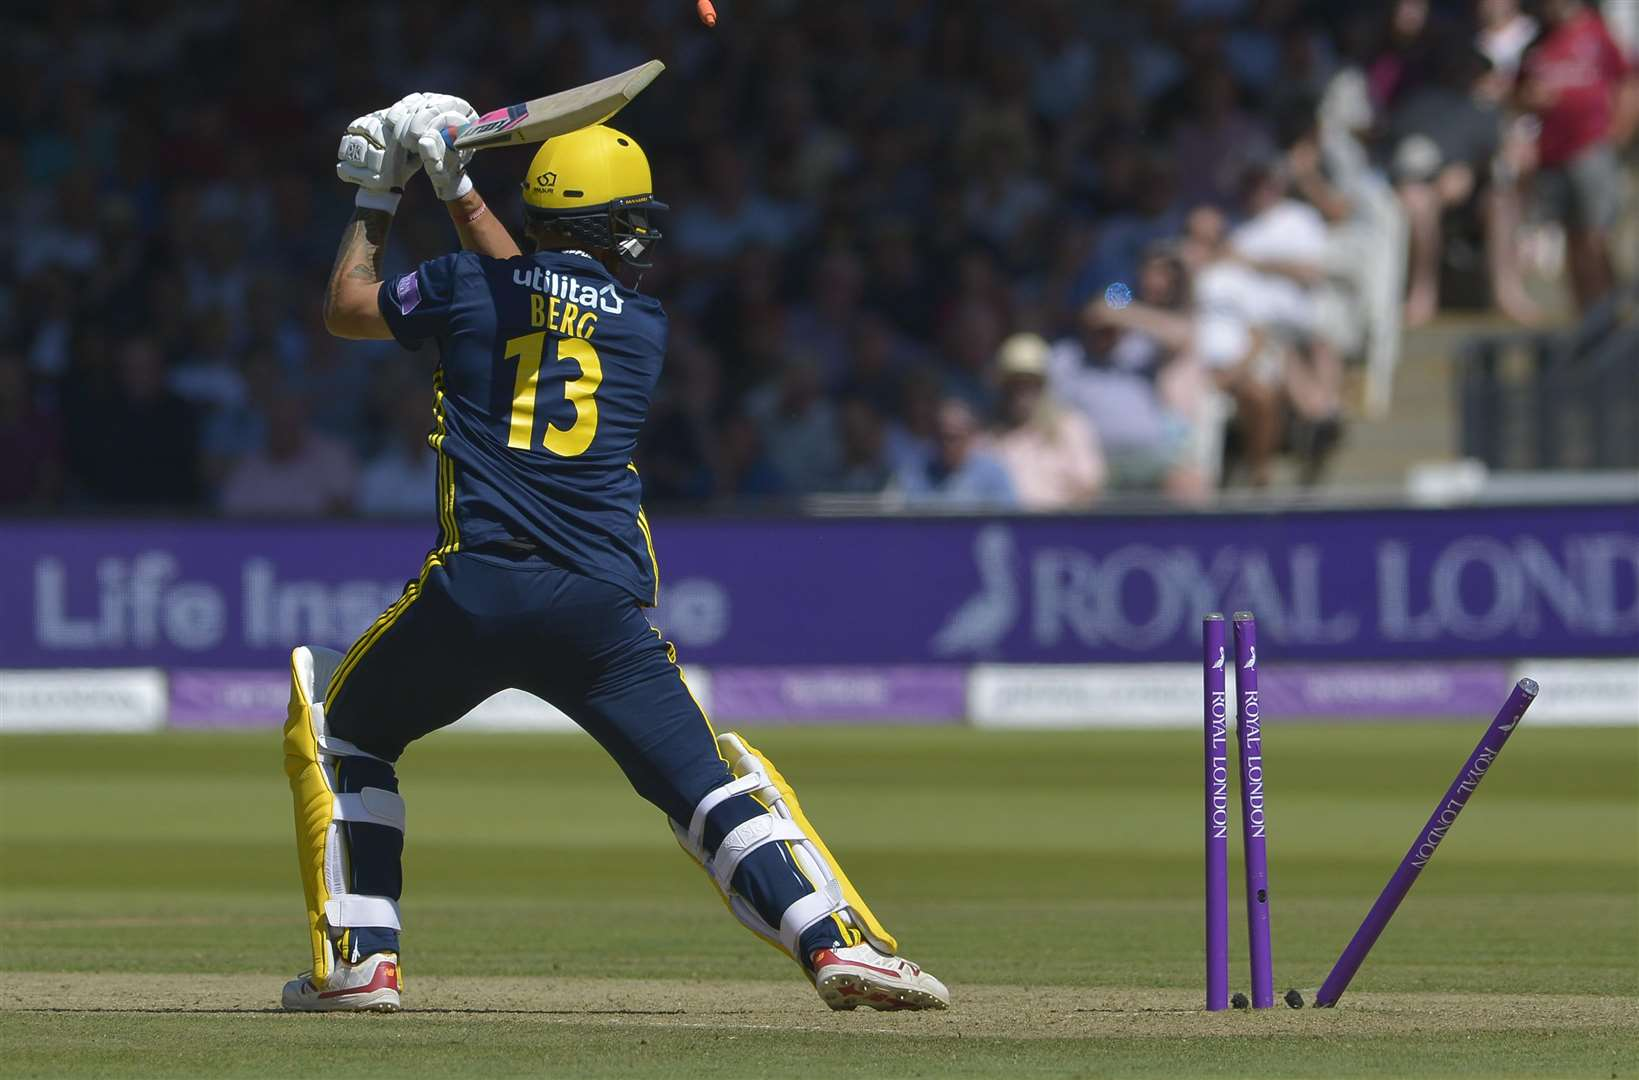 Hampshire 's Gareth Berg is bowled by Calum Haggett Picture: Ady Kerry